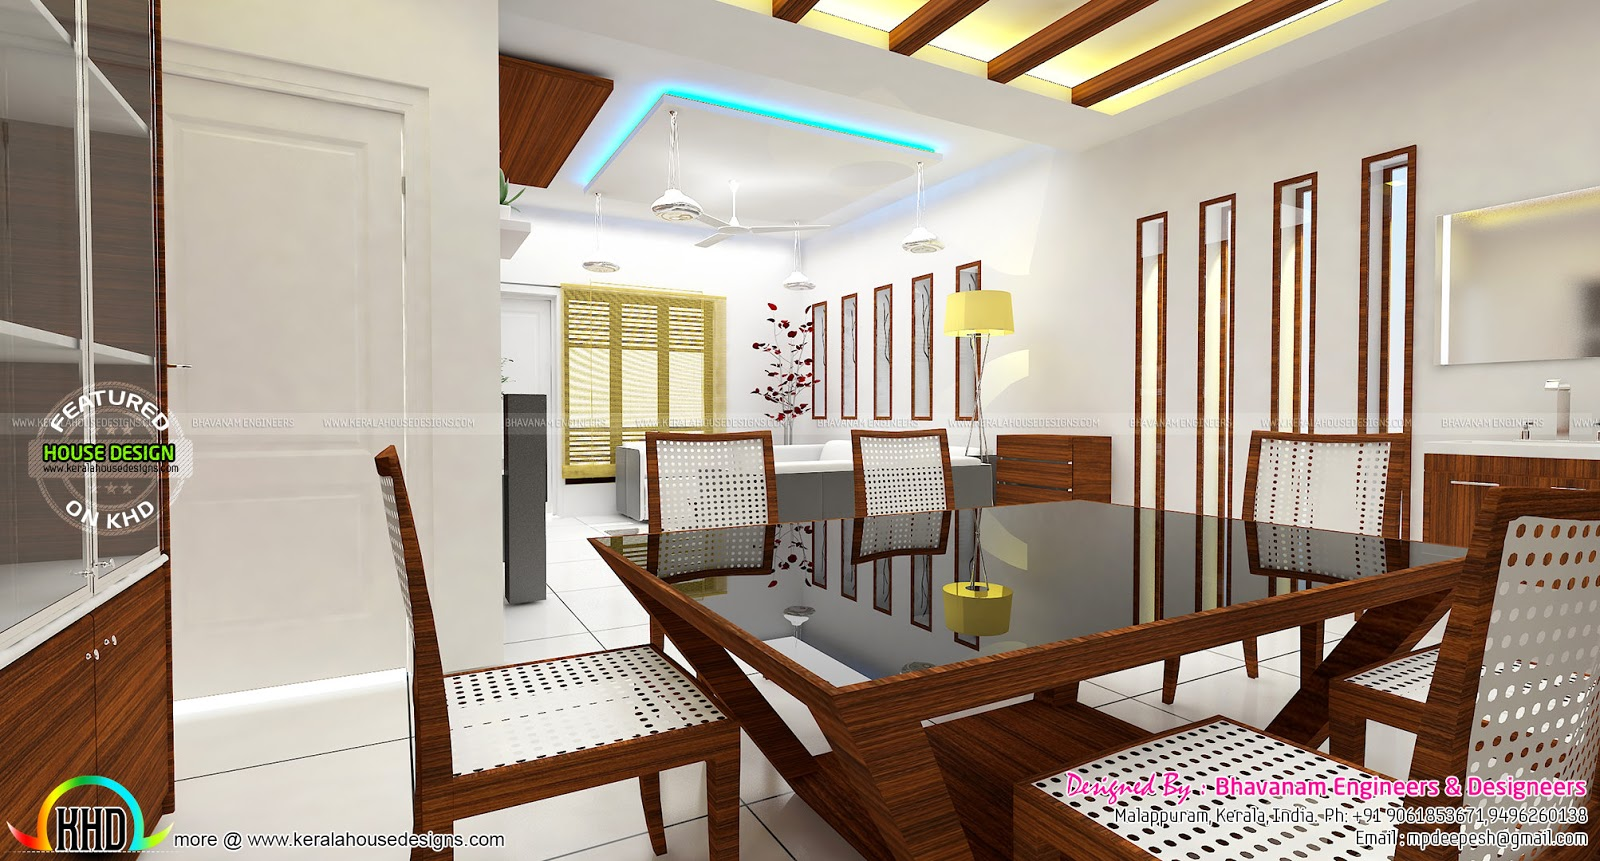 Interior design living room in kerala for Billings plan room